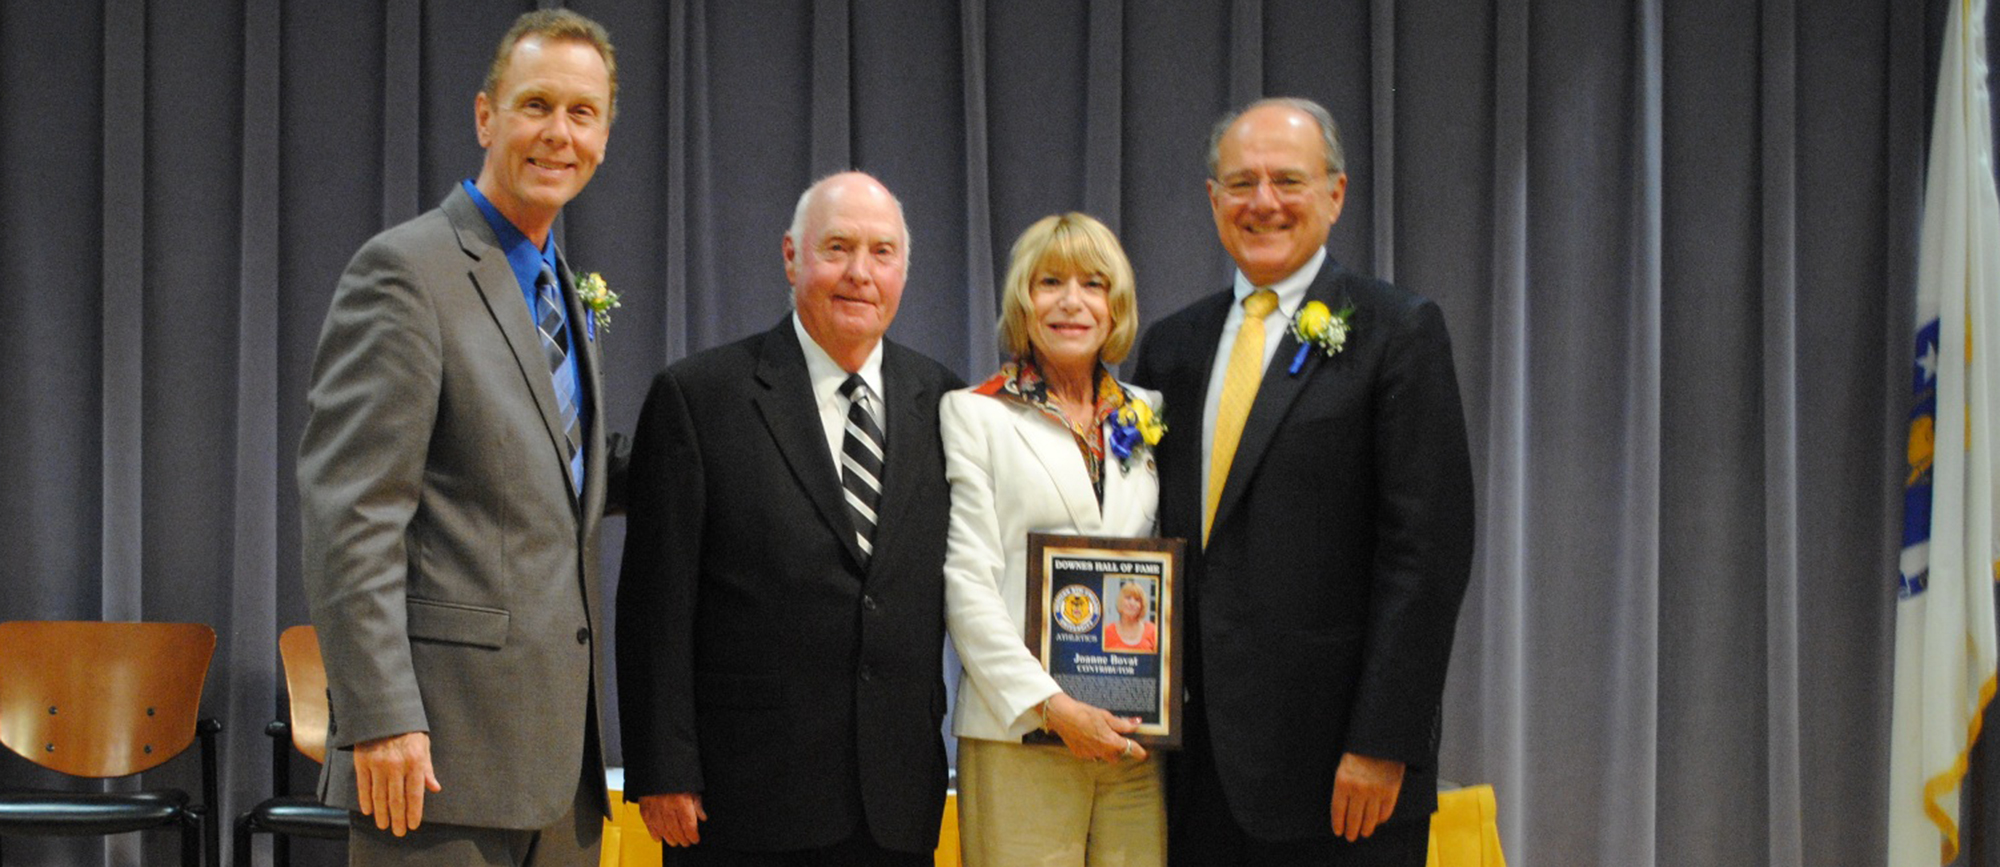 Bovat at the 2011 Downes Athletic Hall of Fame induction ceremony along with (from left) former Athletic Director Mike Theulen, Coach Bill Downes, and University President Dr. Anthony Caprio.